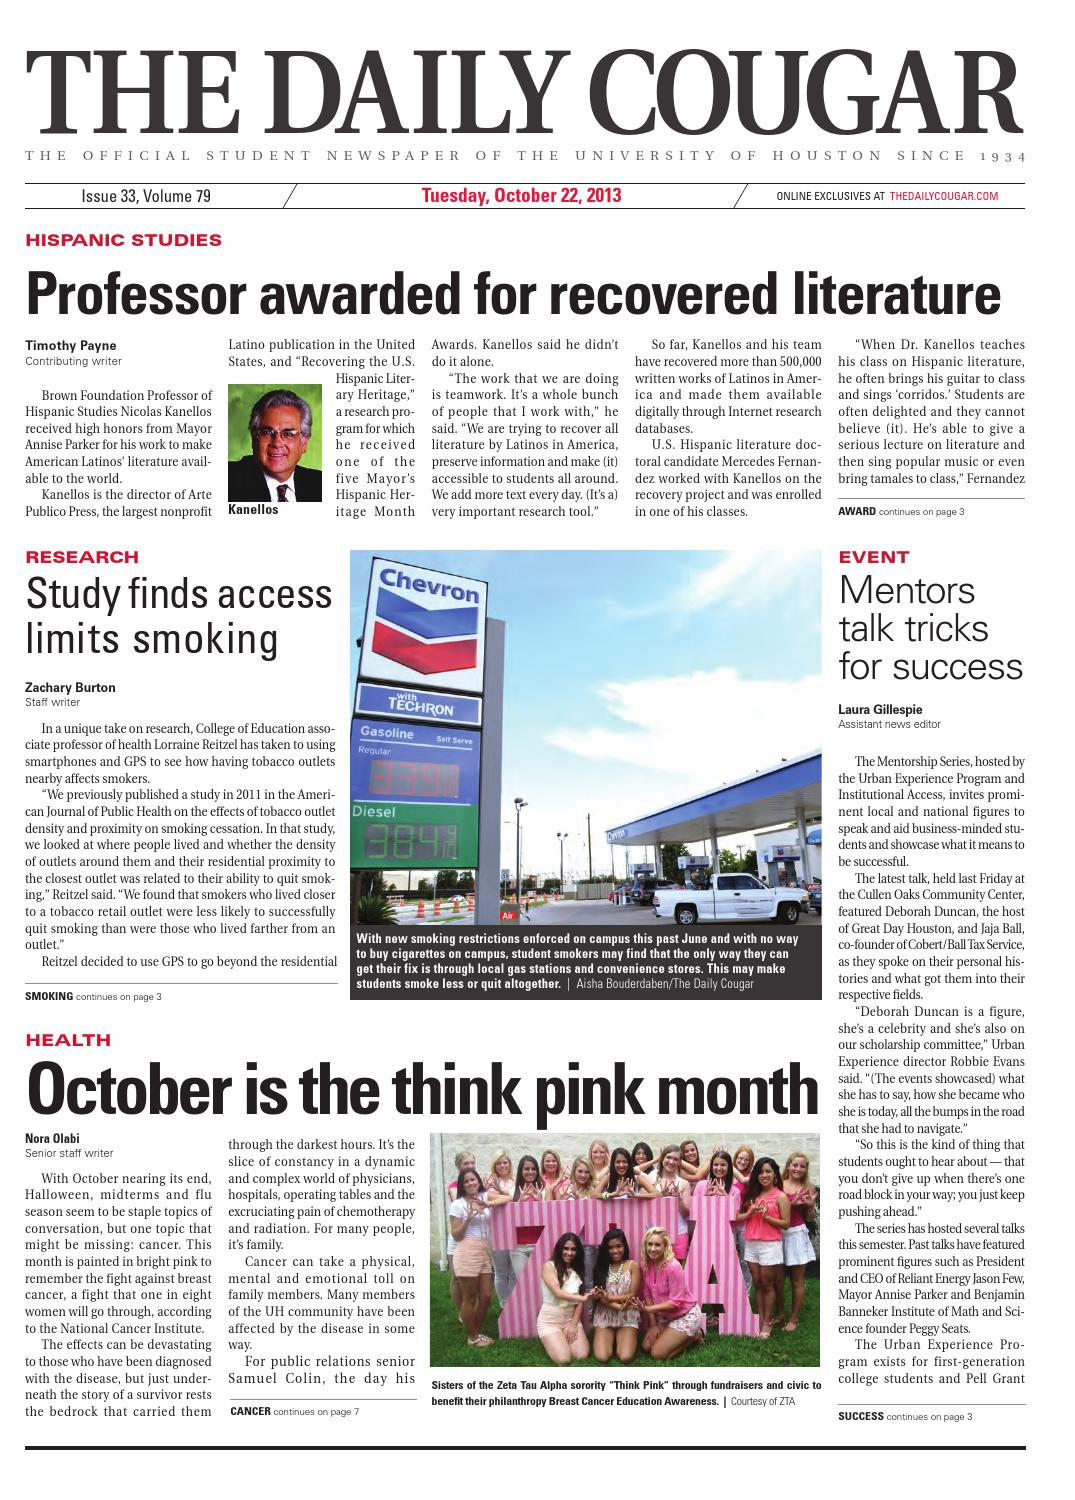 Arte Publico Press Desk Copies Volume 79 Issue 33 By The Daily Cougar Issuu